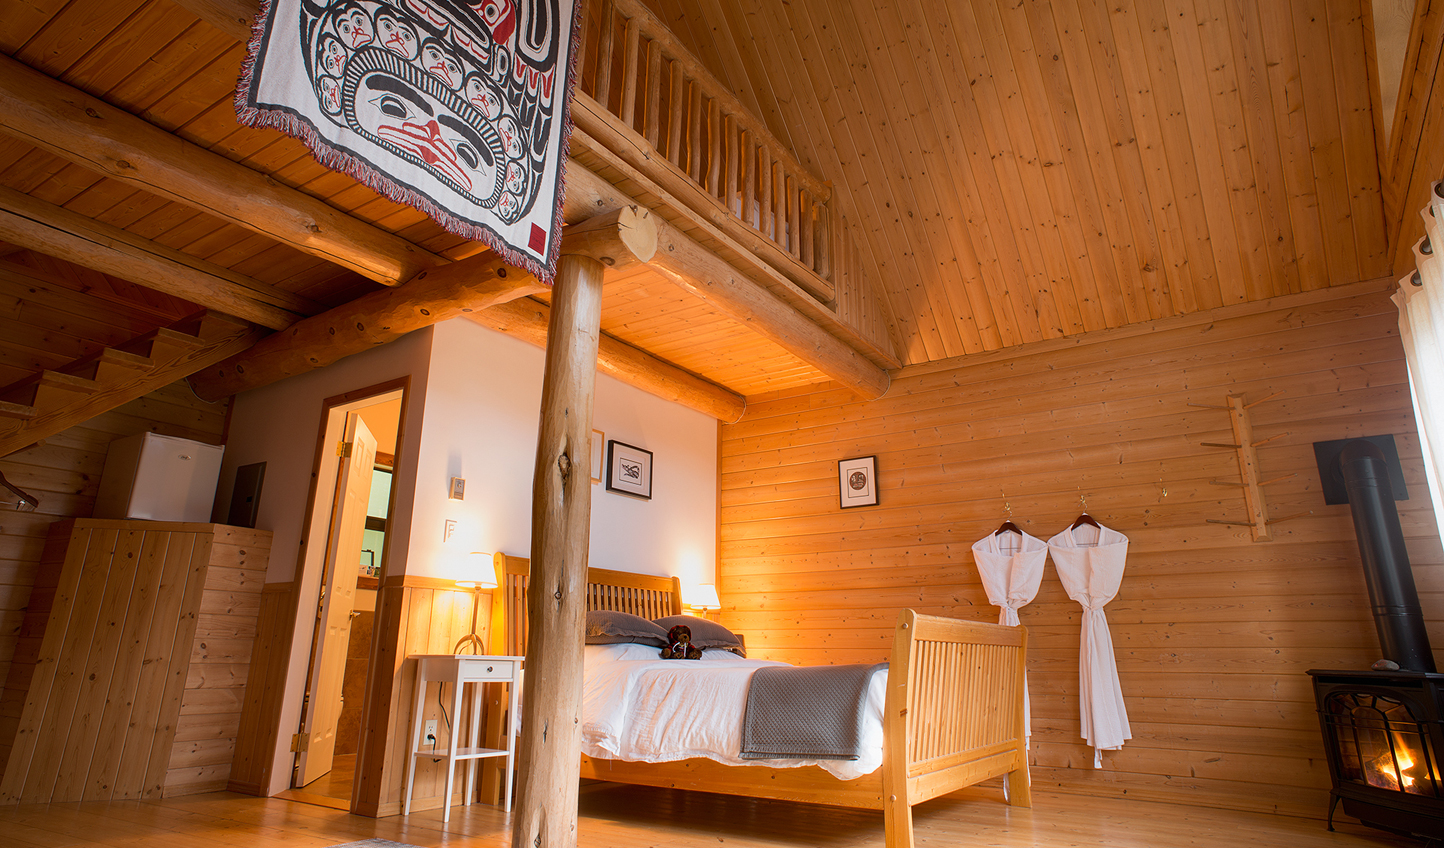 Loft Chalets offer space for all the family